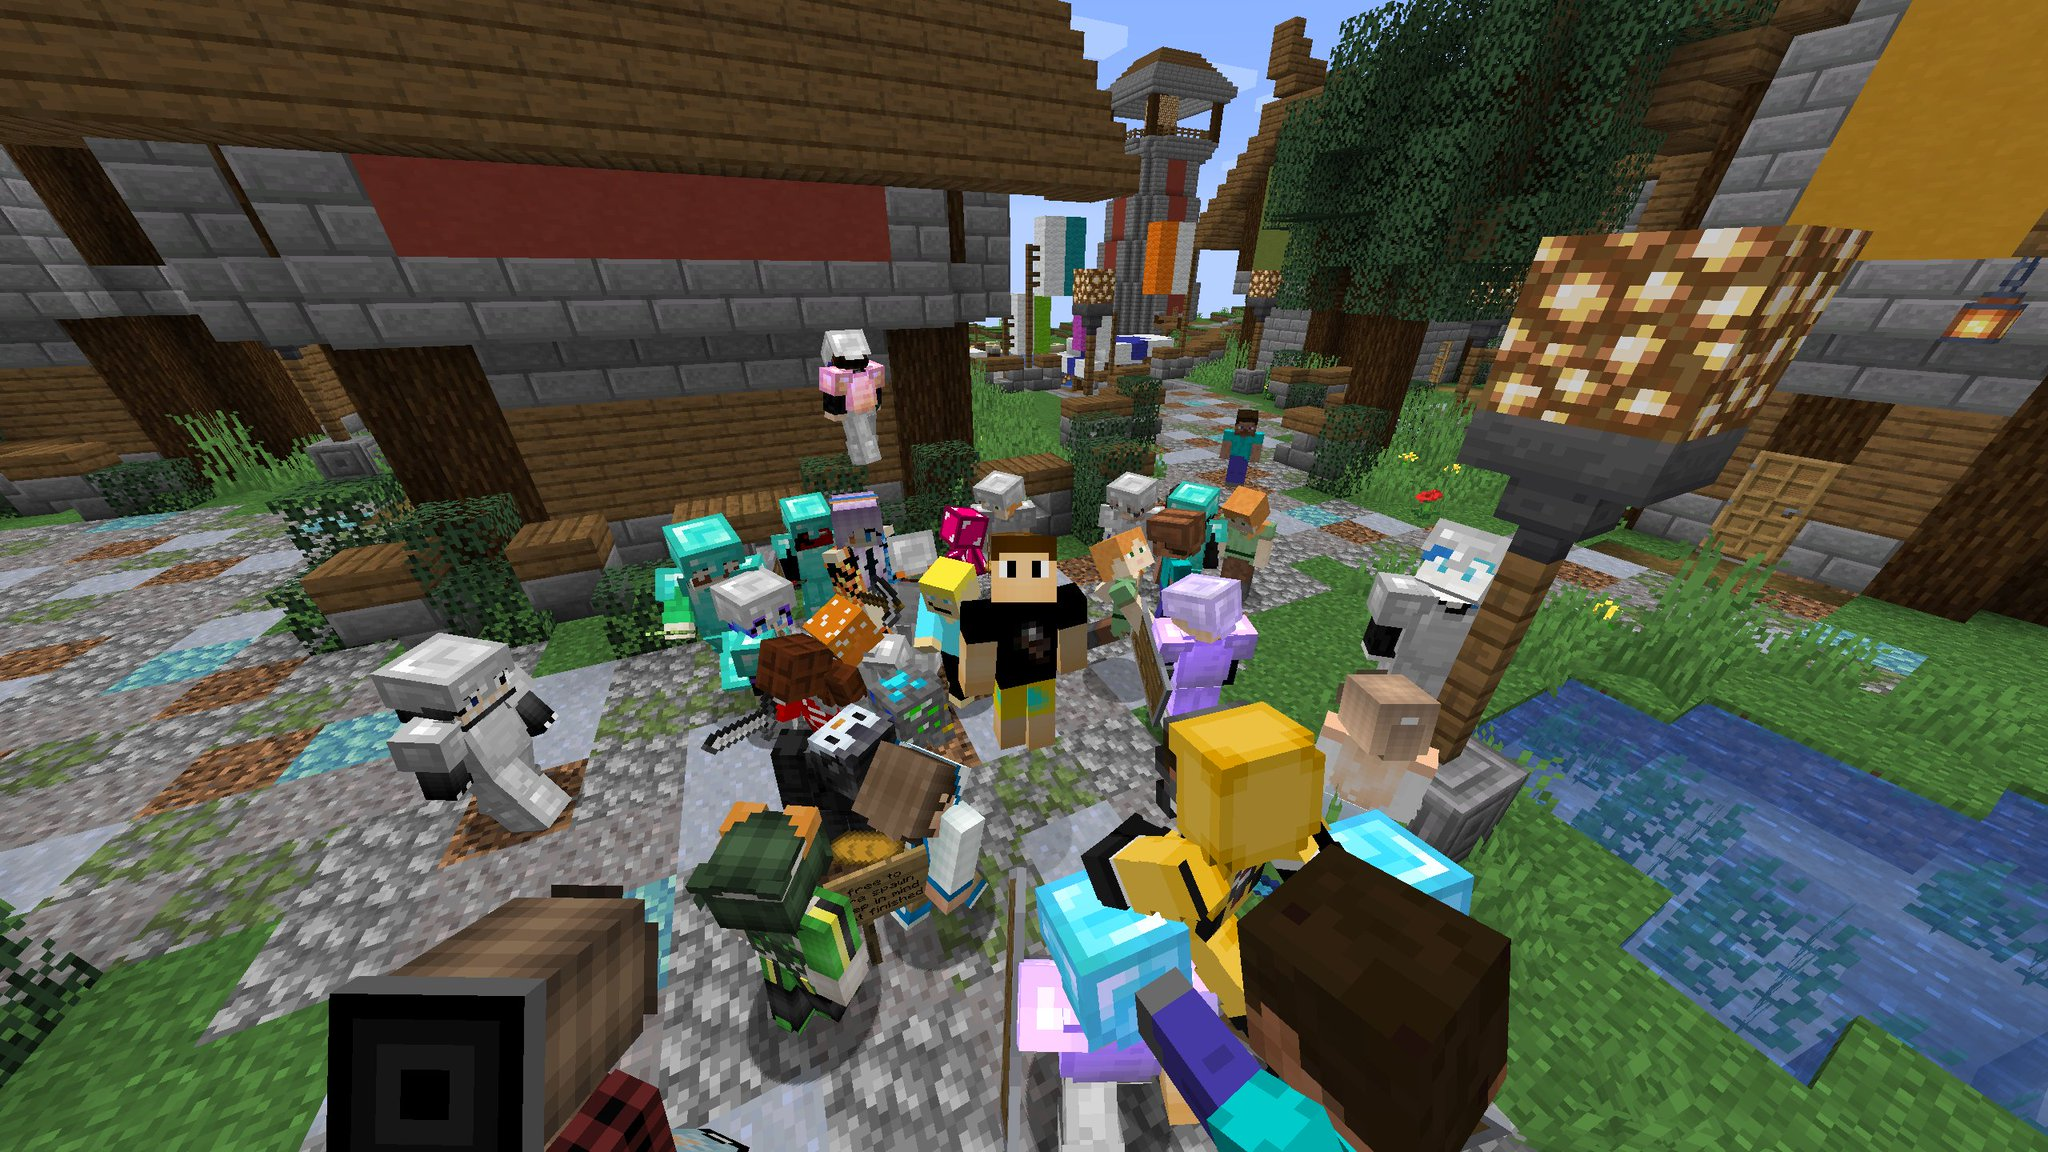 Poke On Twitter Come Join My Minecraft Server To Play And Film With Me D Ip Https T Co X28il4vgid Version 1 15 2